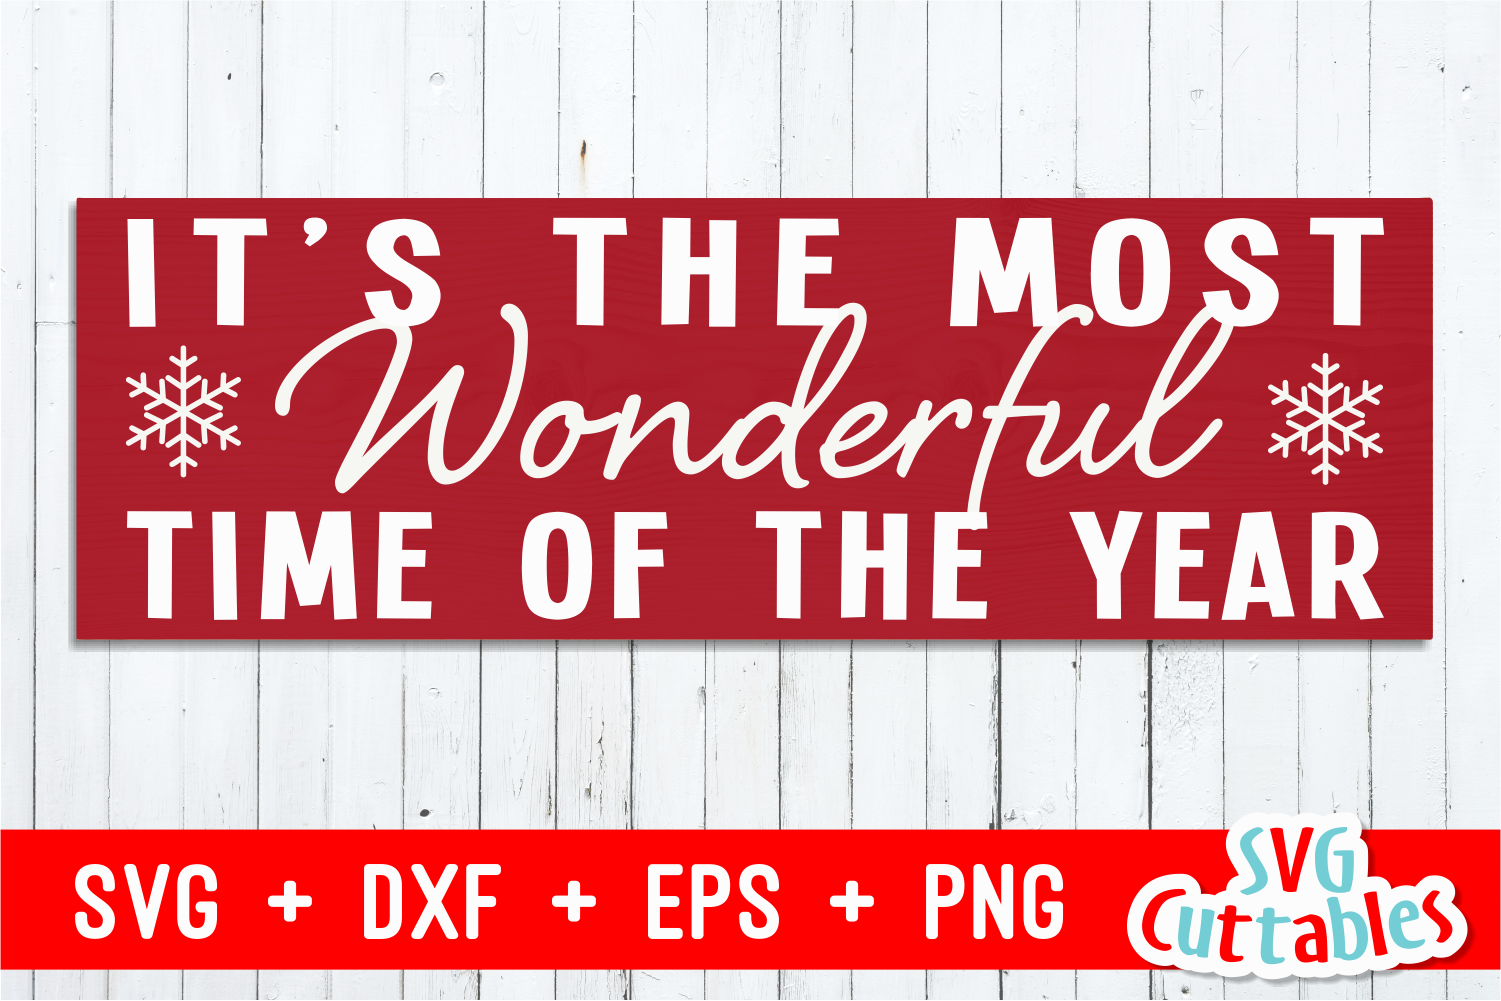 It's the most wonderful time of the year |Christmas Cut File example image 1